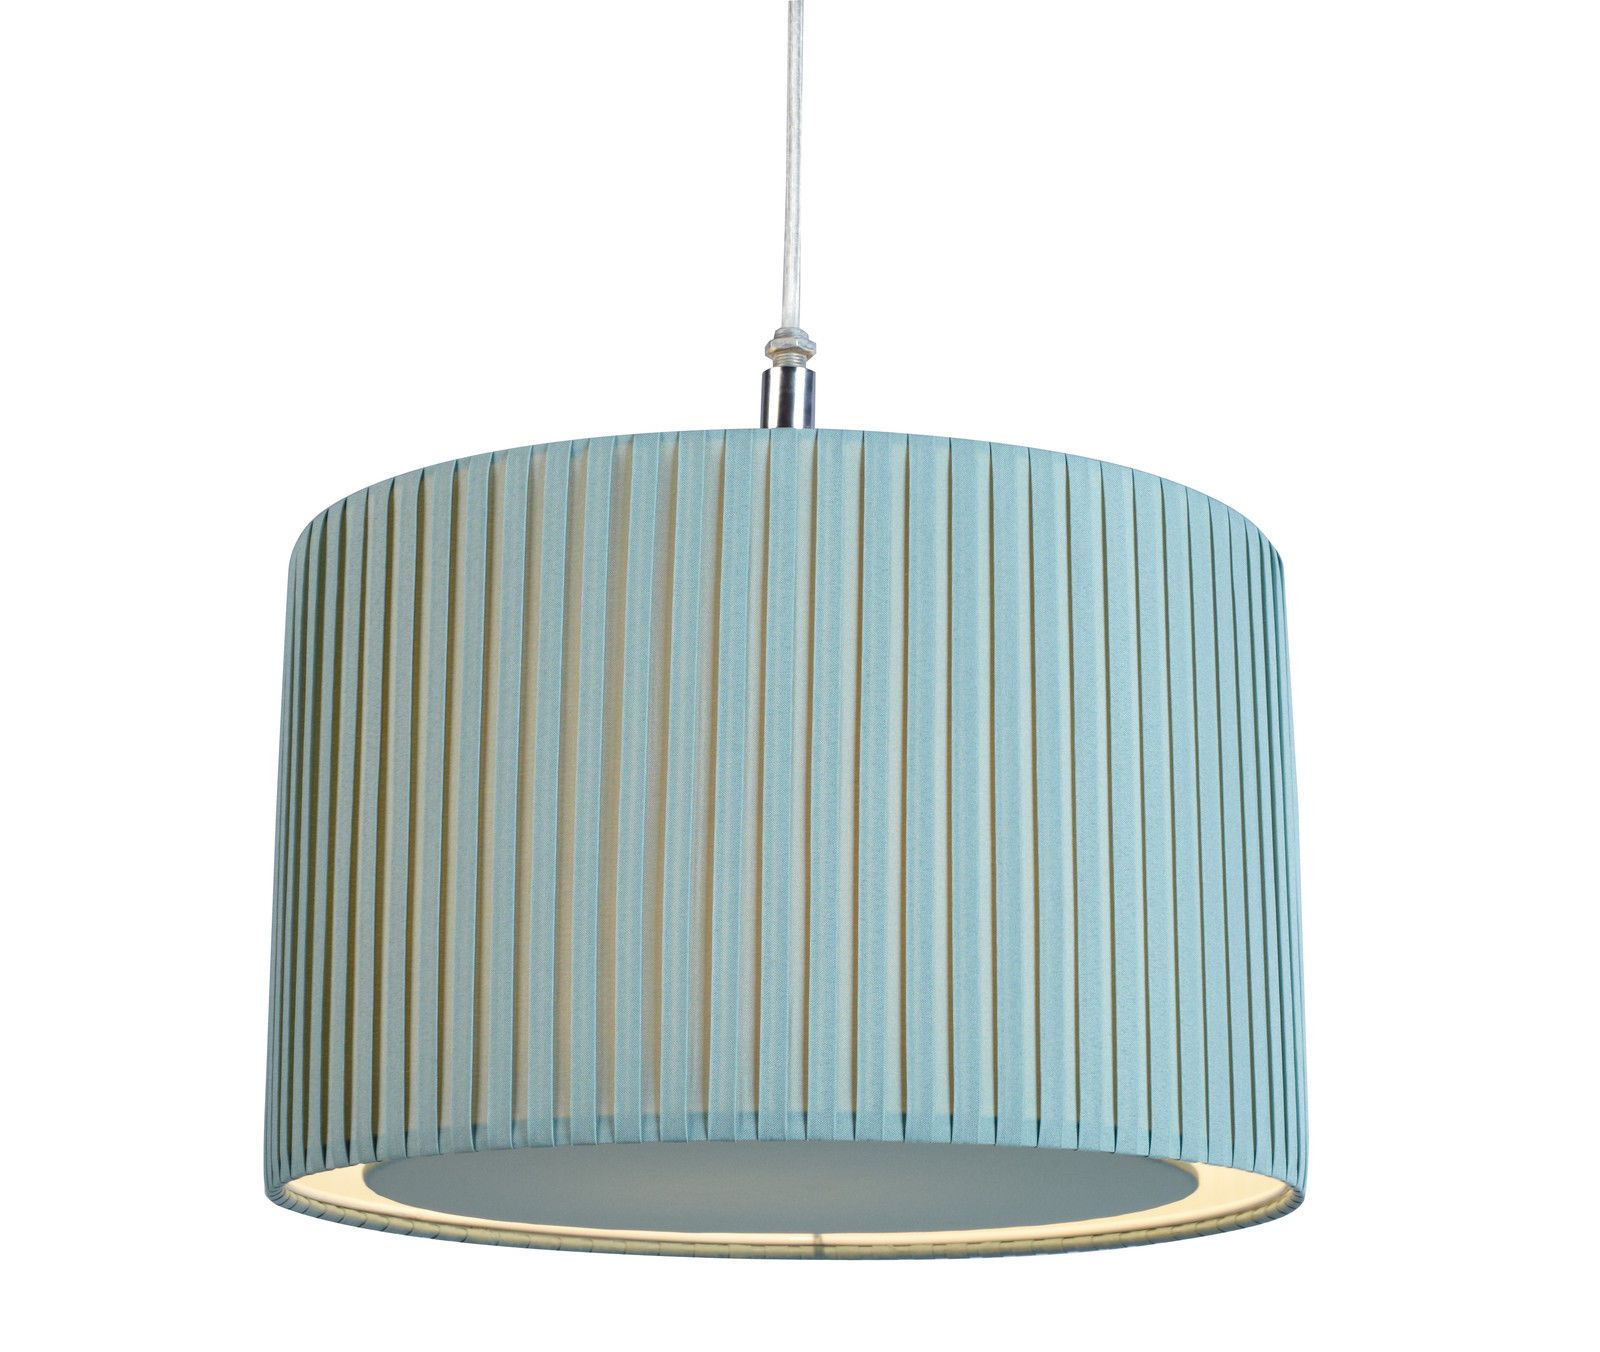 Lamp Shades For Ceiling Lights: Details About Pleated Fabric Drum Lampshade Diffuser